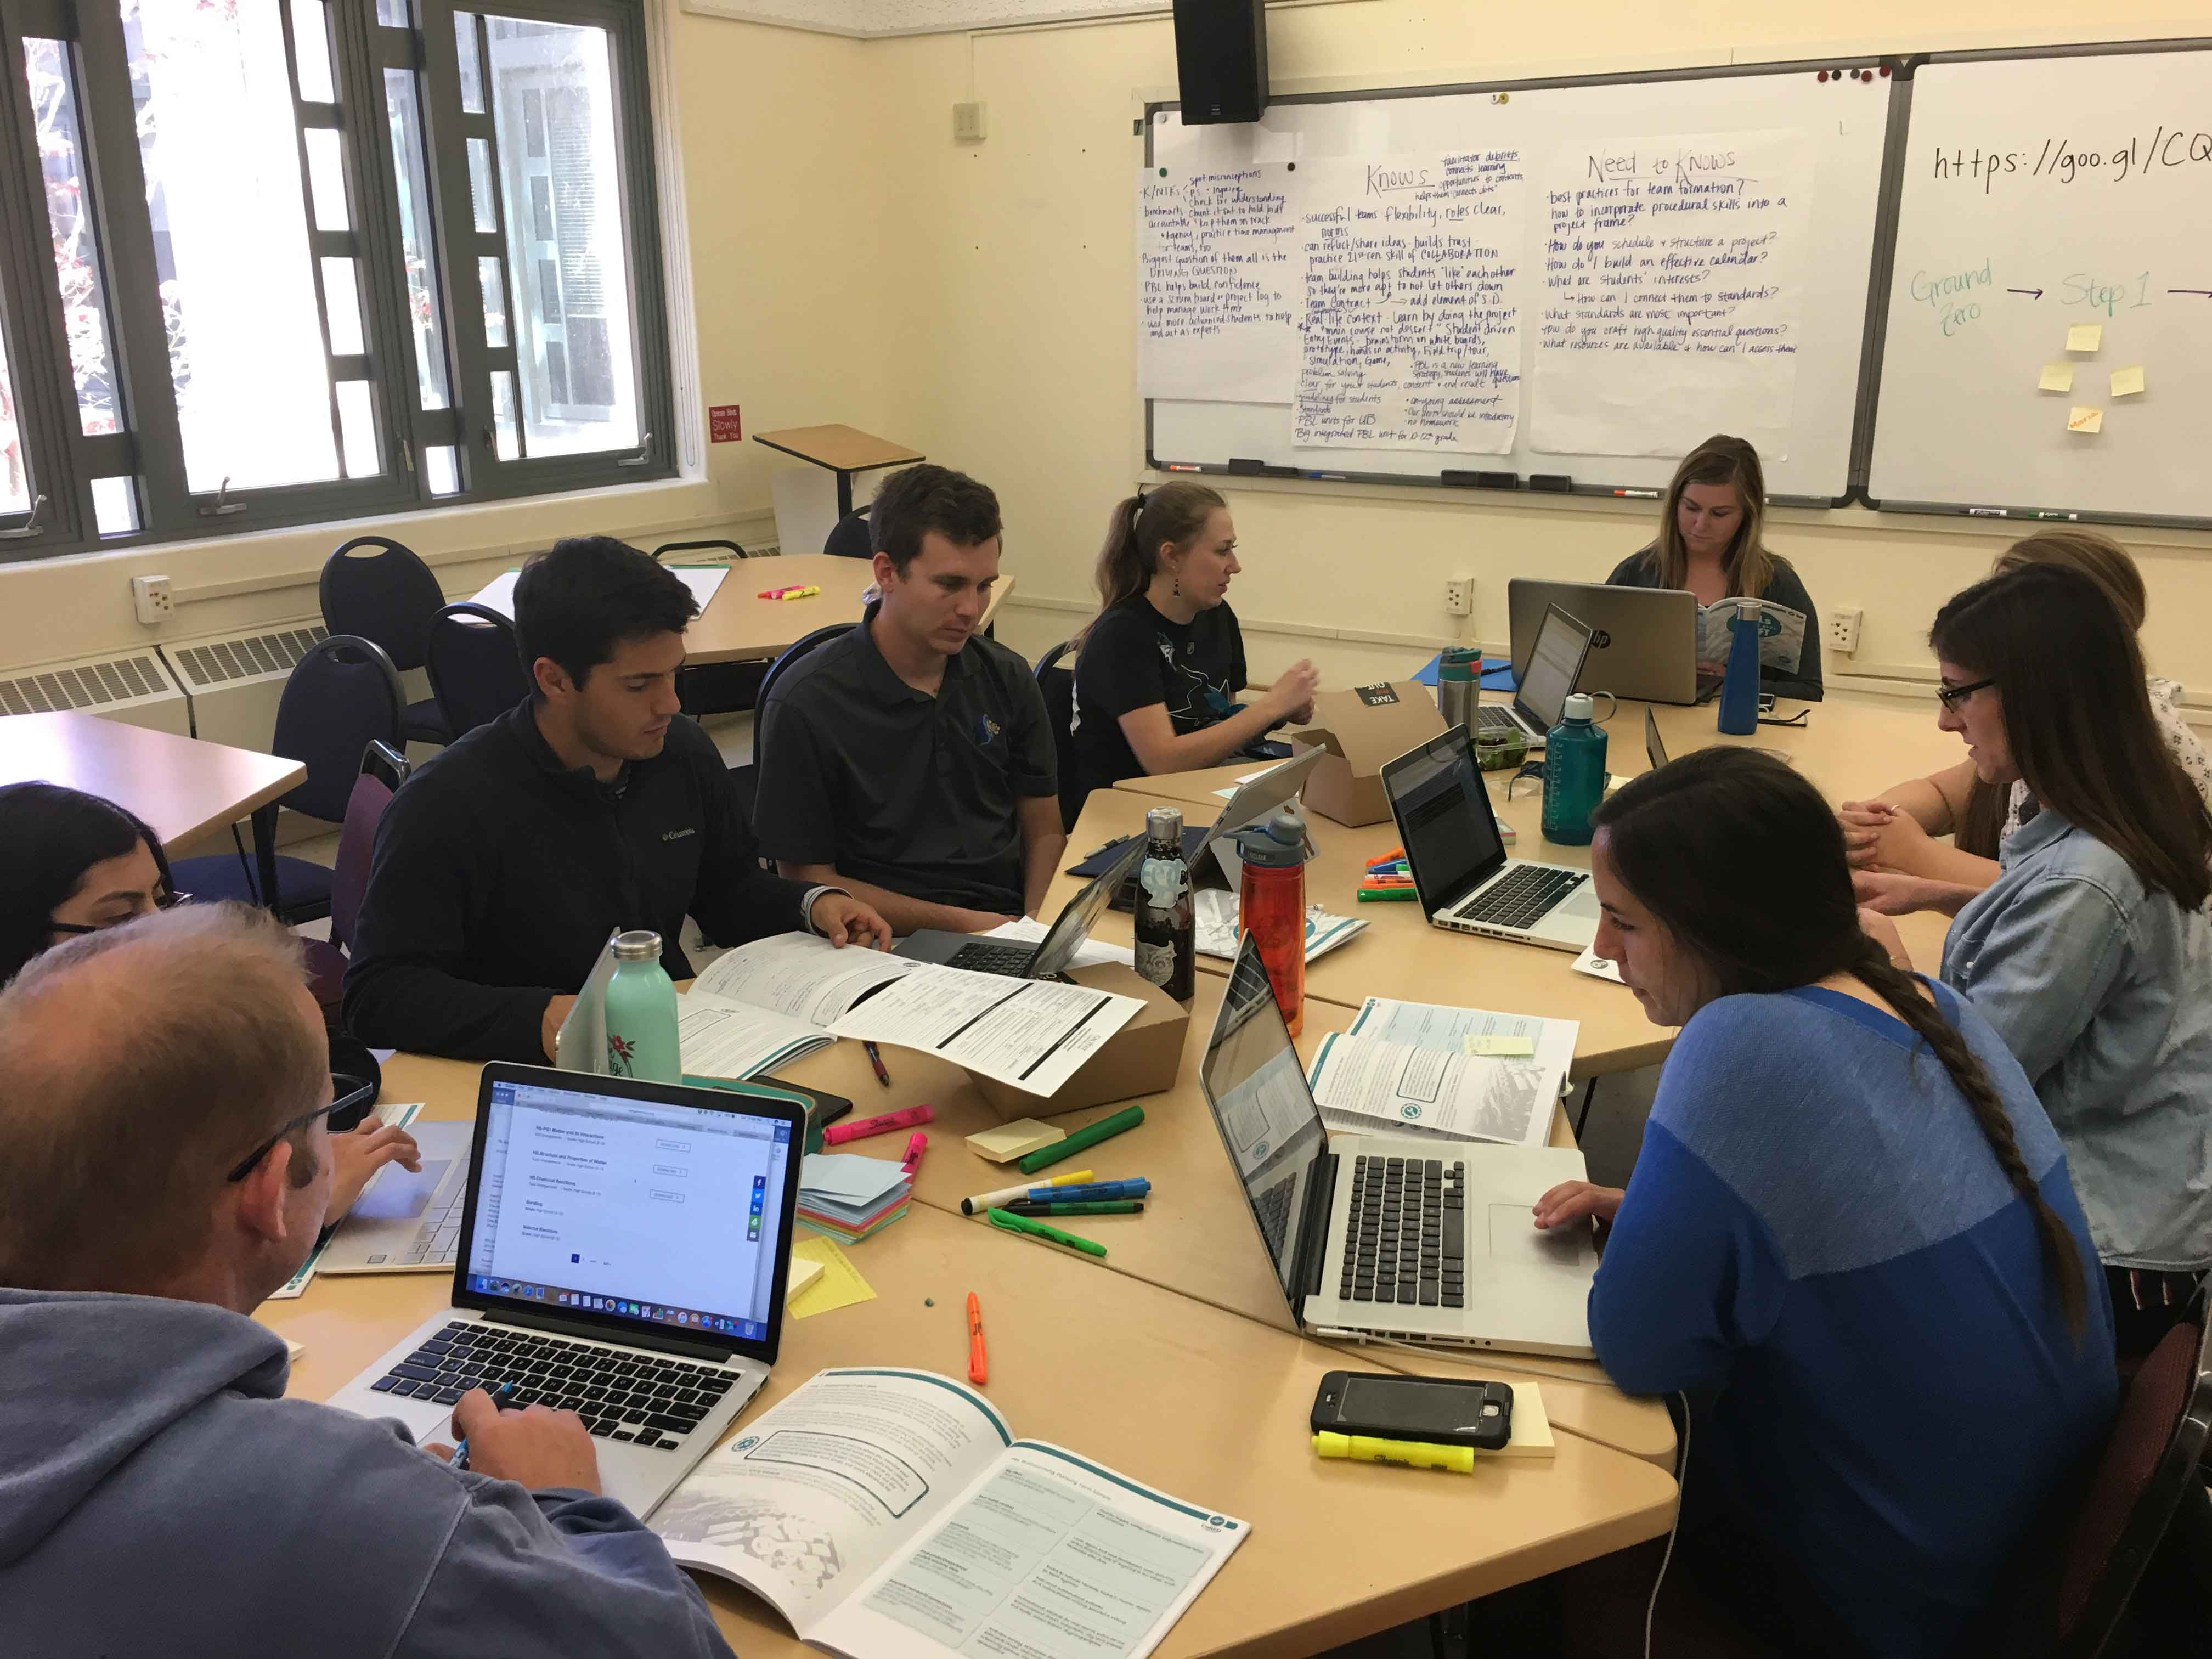 Teachers from Central Coast New Tech High School facilitate training sessions totaling 18 hours for Cal Poly teacher credential candidates who will serve as Summer Academy instructors.